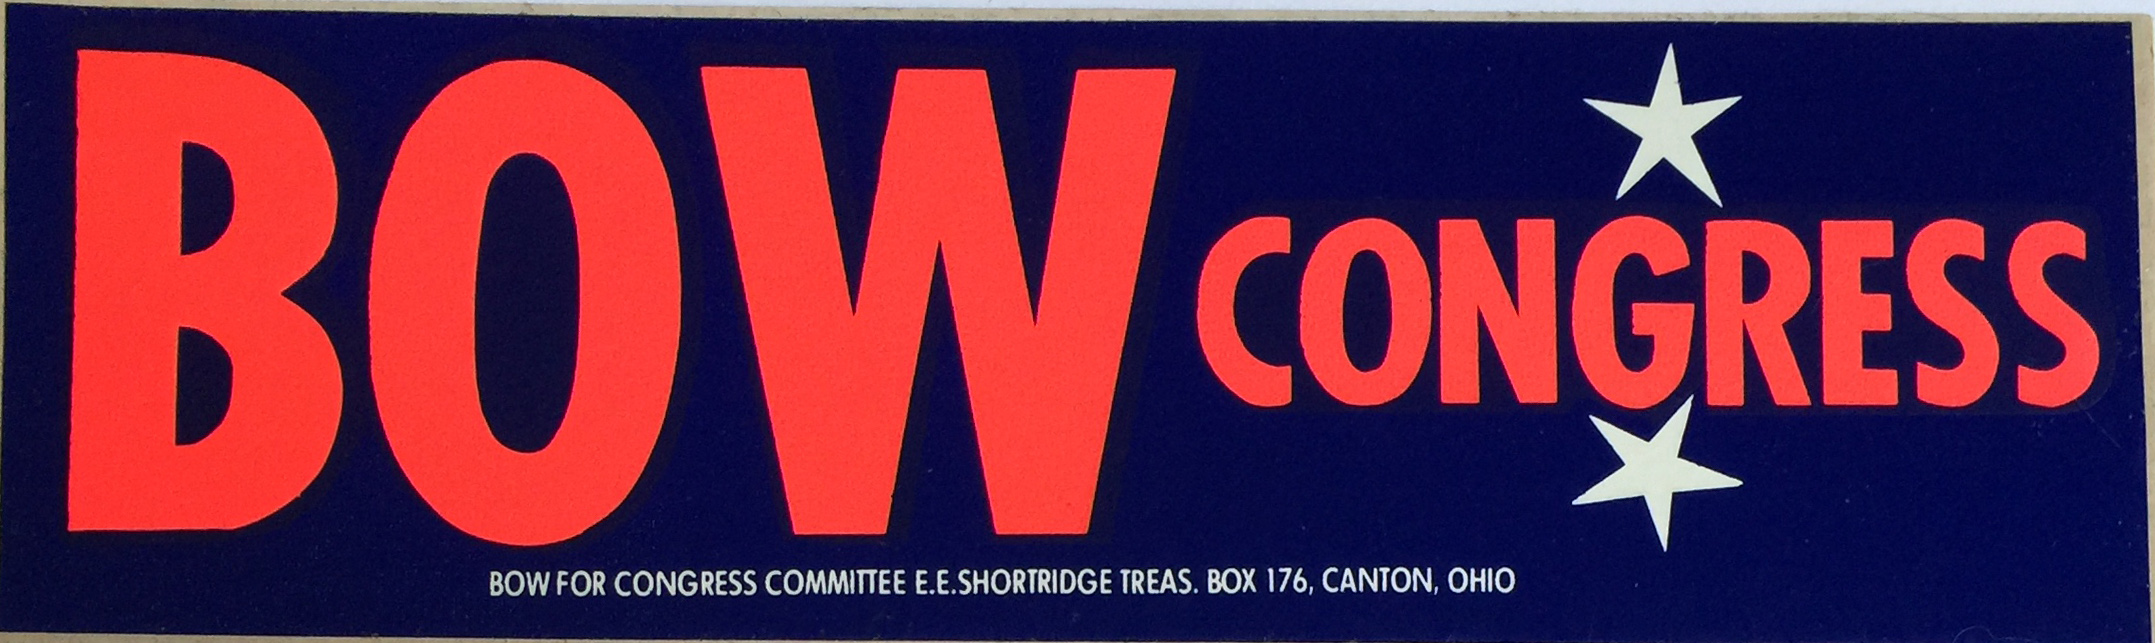 Sticker-congress BOW.jpg